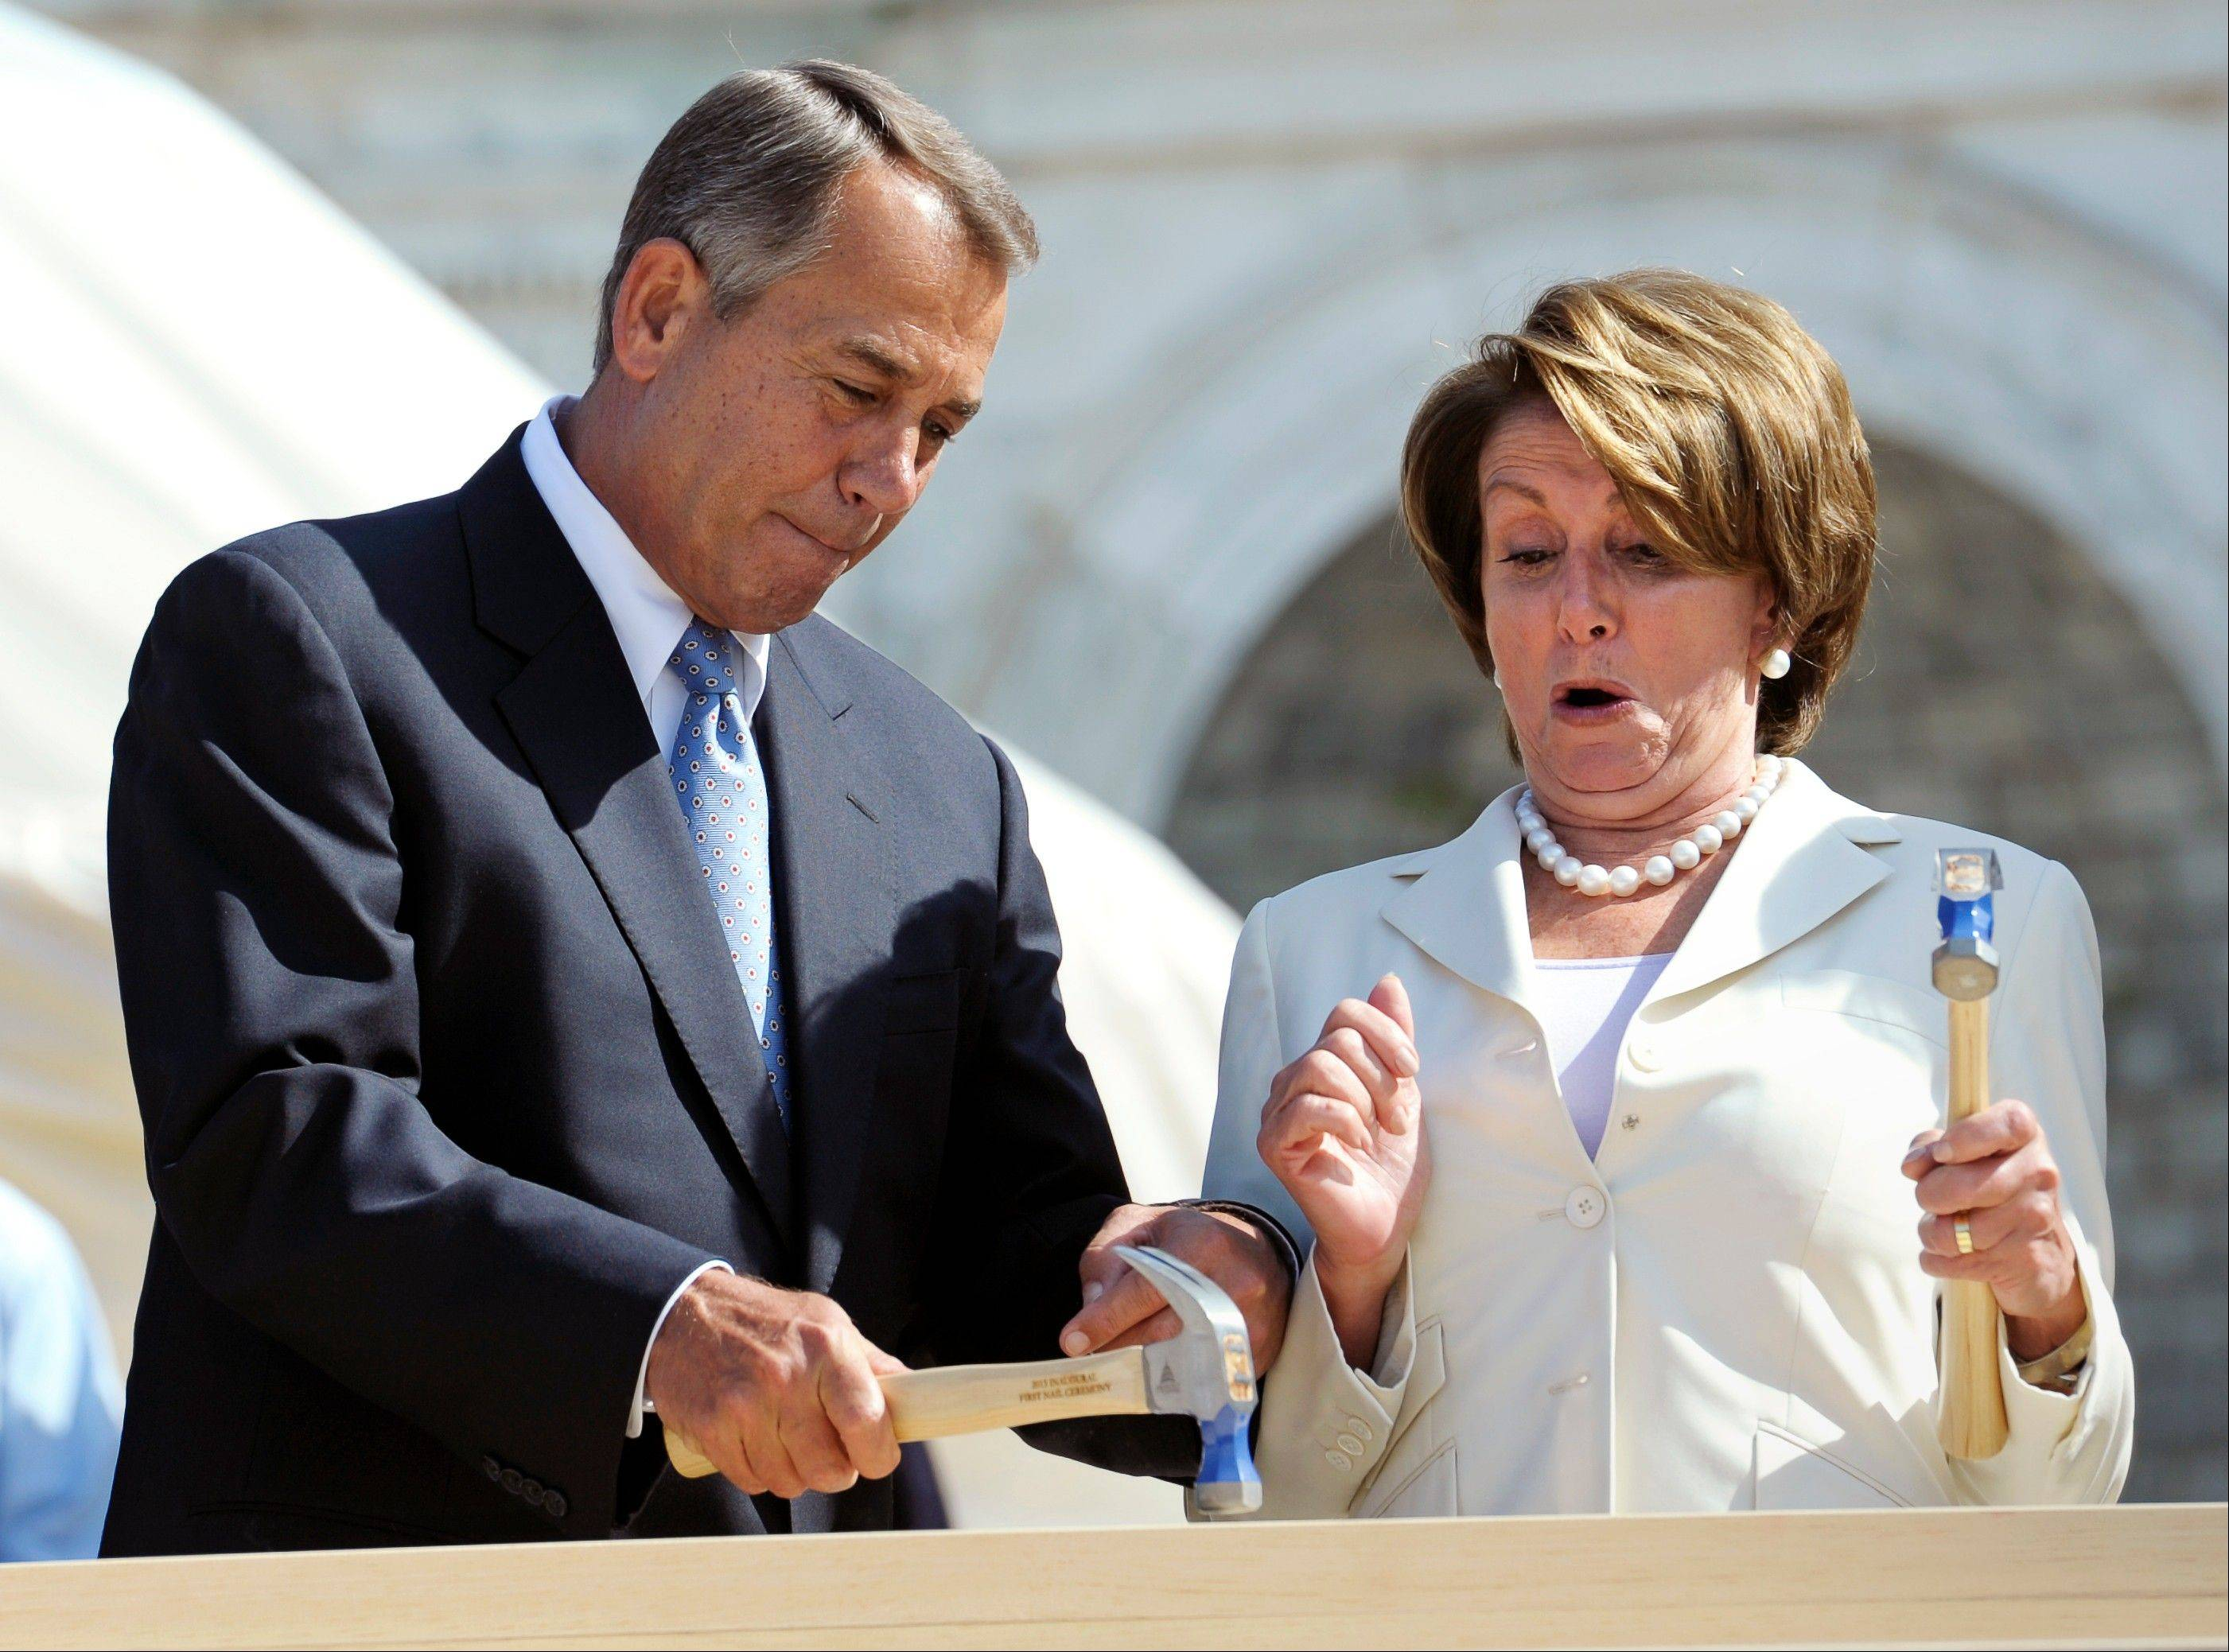 Speaker of the House John Boehner finishes hammering a nail into a plank with House Democratic Leader Nancy Pelosi during the First Nail Ceremony for the official launch of construction of the inaugural platform, where the president will take the oath of office in January.